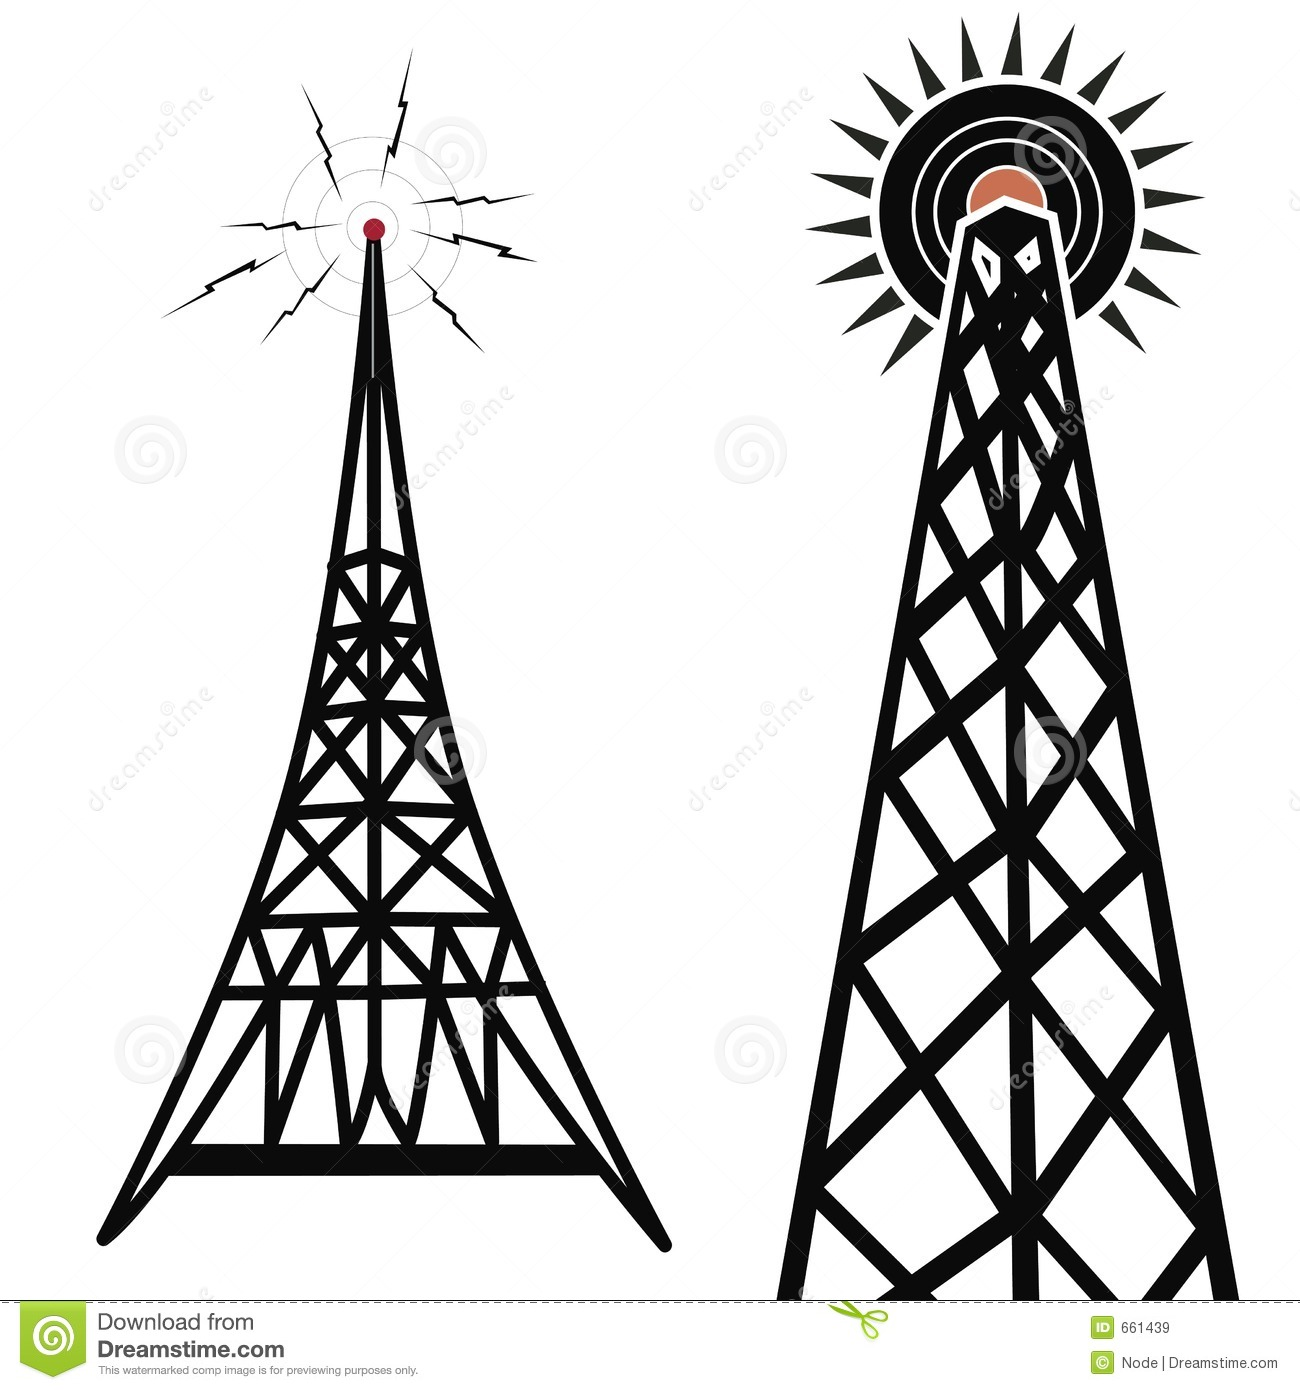 Radio Towers Royalty Free Stock Images